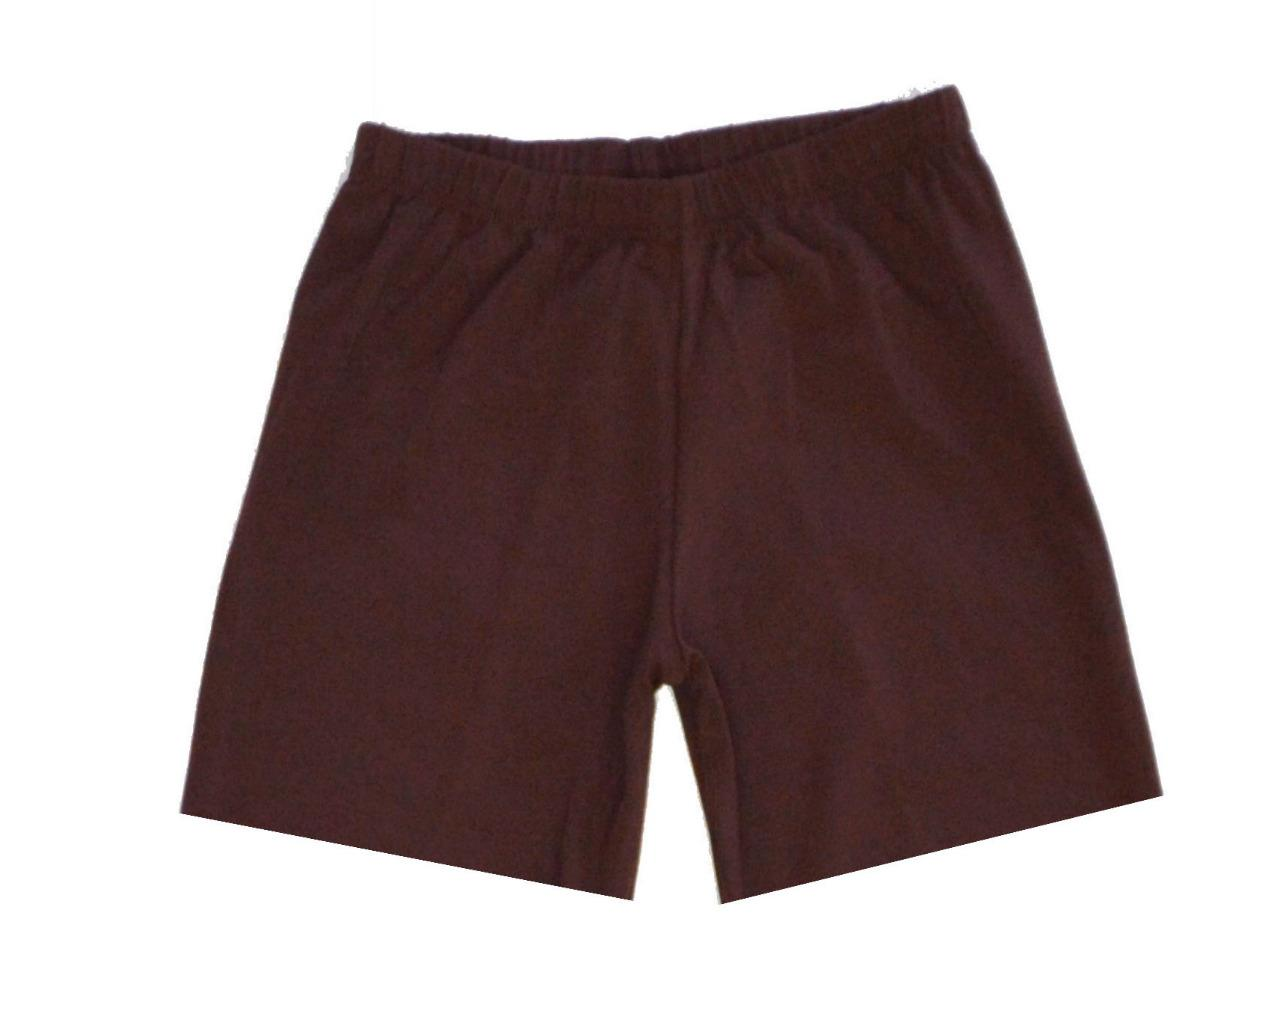 Spandex Shorts. Showing 48 of results that match your query. Search Product Result. Product - Time and Tru Women's Bermuda Shorts. Clearance. Product Image. Price Product - Leveret Girls Shorts Bike Pants 94% Cotton 6% Spandex (Size Years) Product Image. Price .